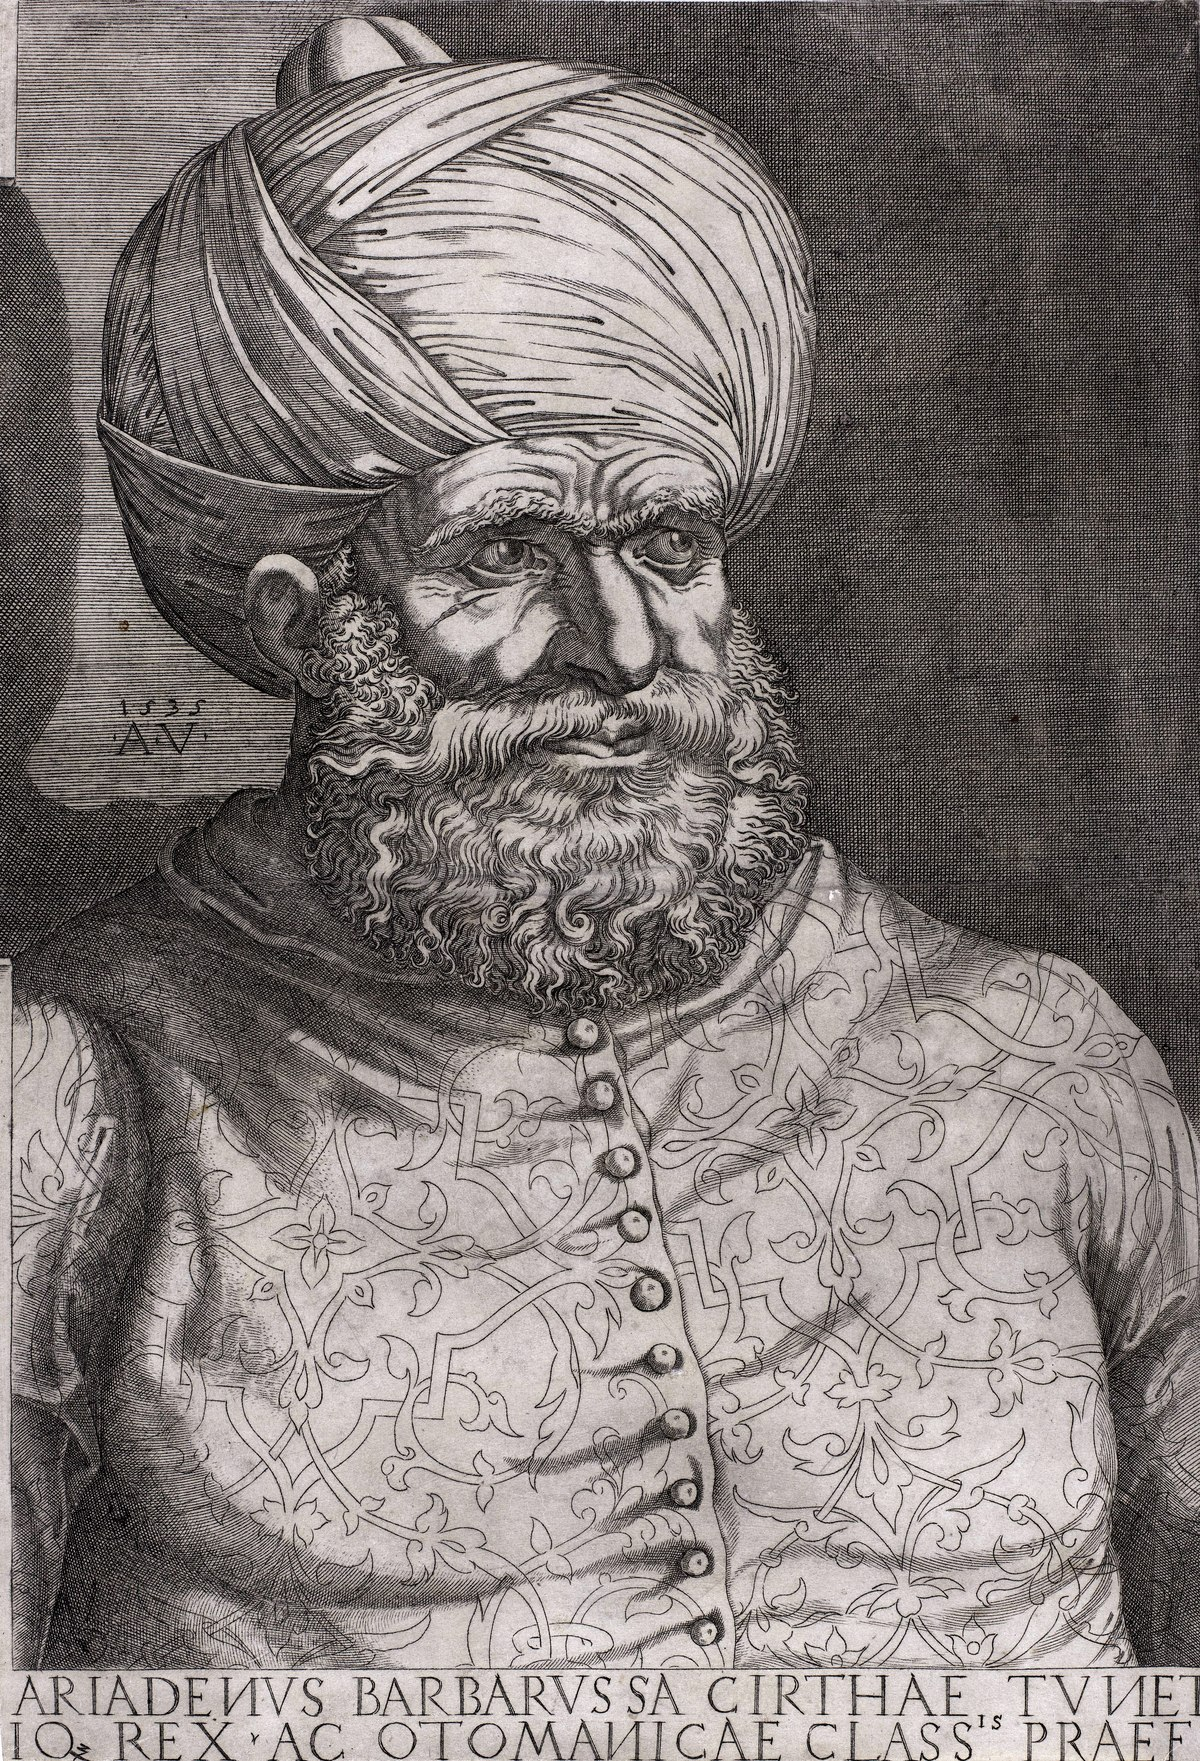 I Was Like Oh Hey Another Ulzzang But Then I Was Like: Khayr Al-Din Barbarossa